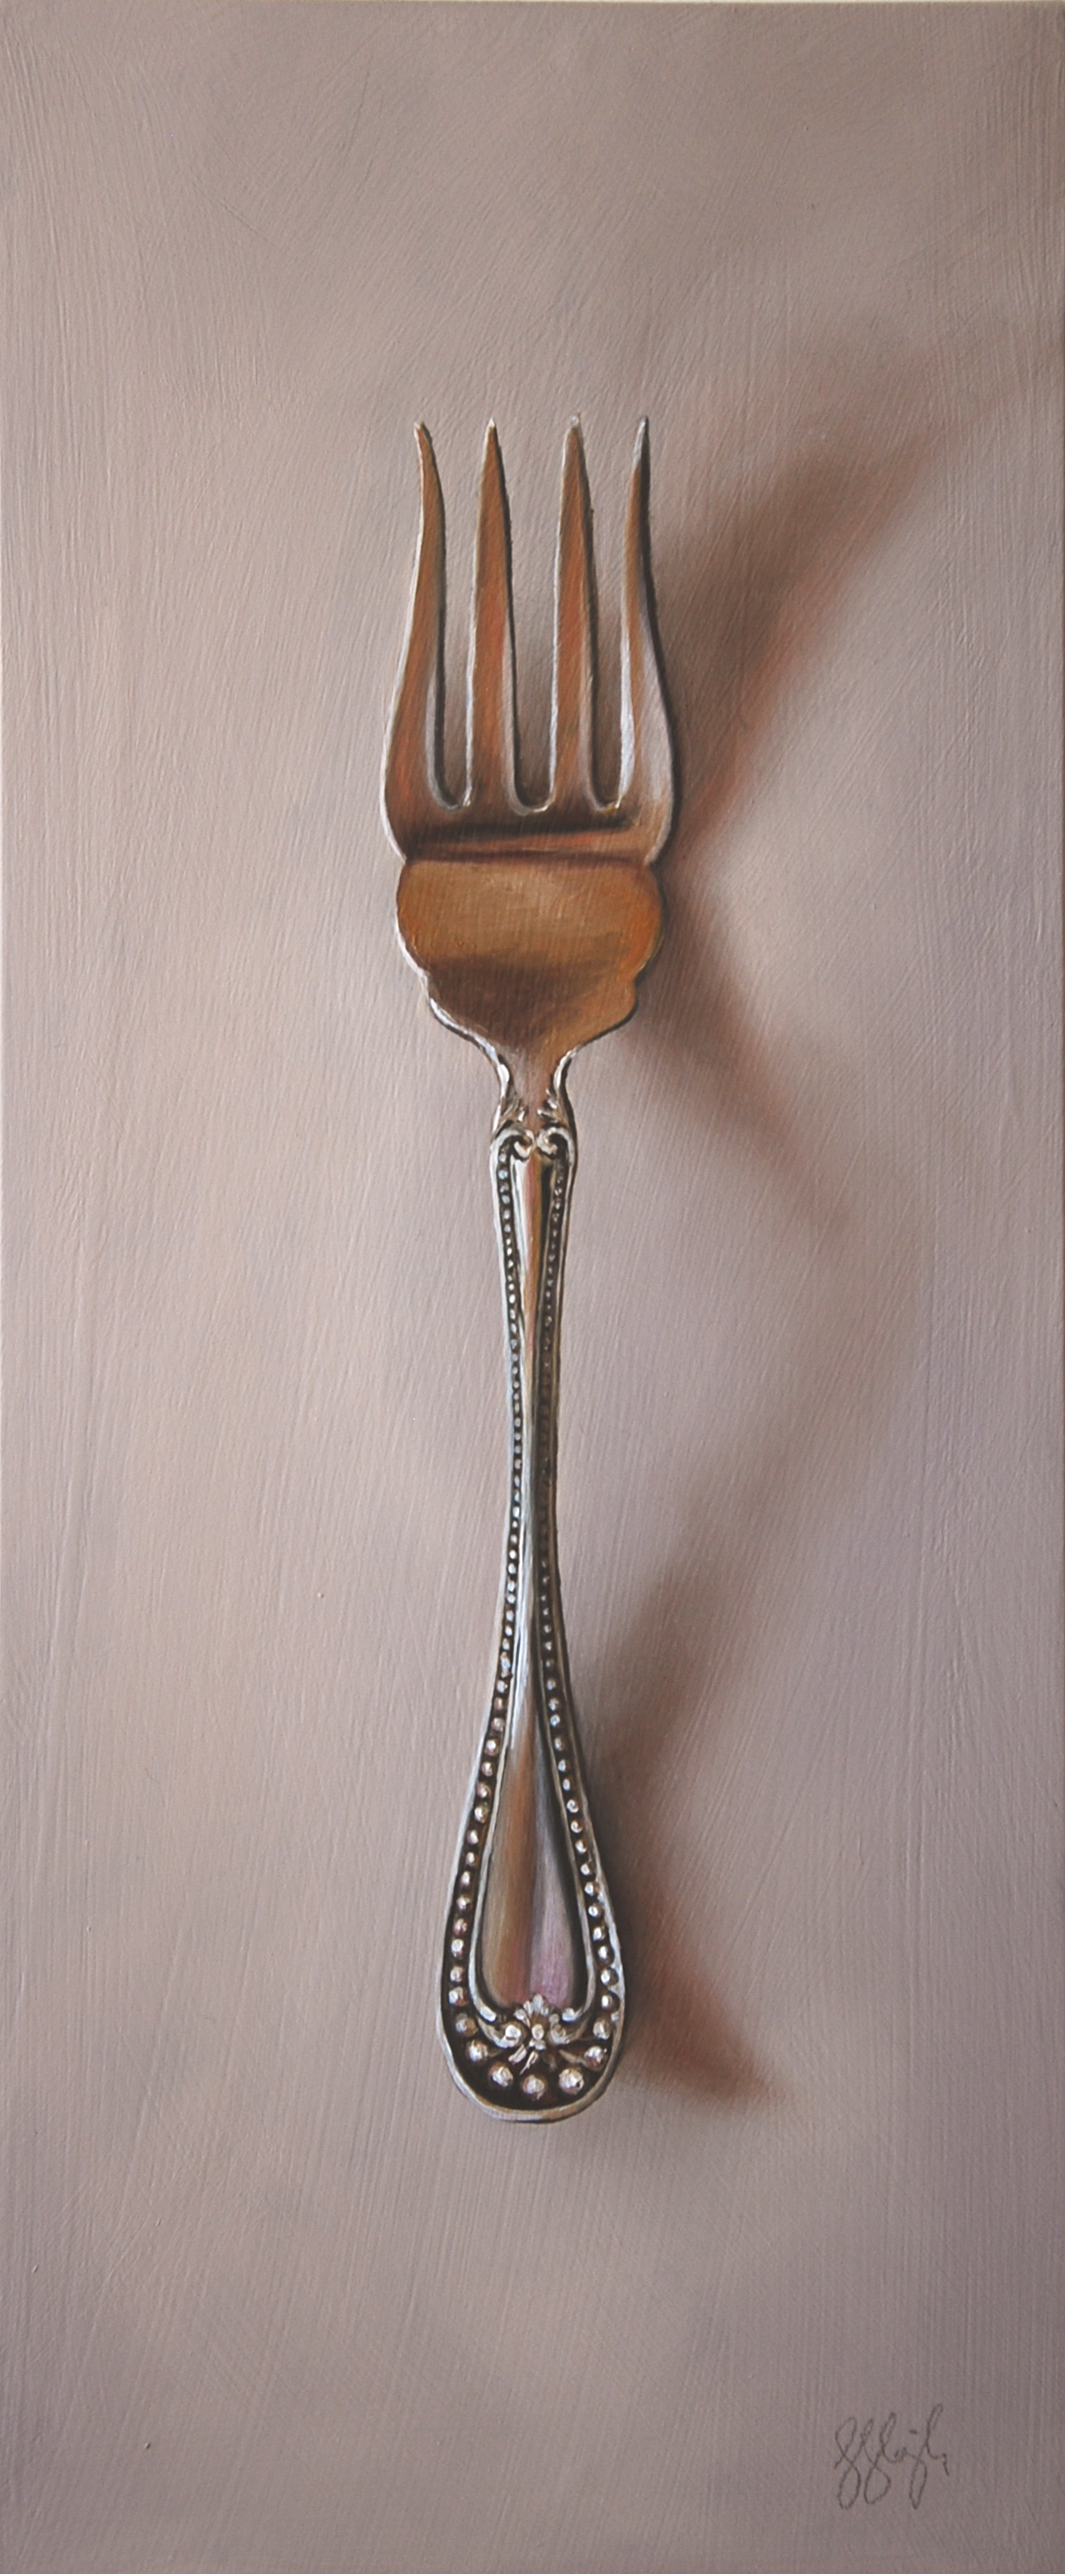 "Silver Fork #41, The Underdog  Oil on panel, 2015. 12x5"" Private collection"